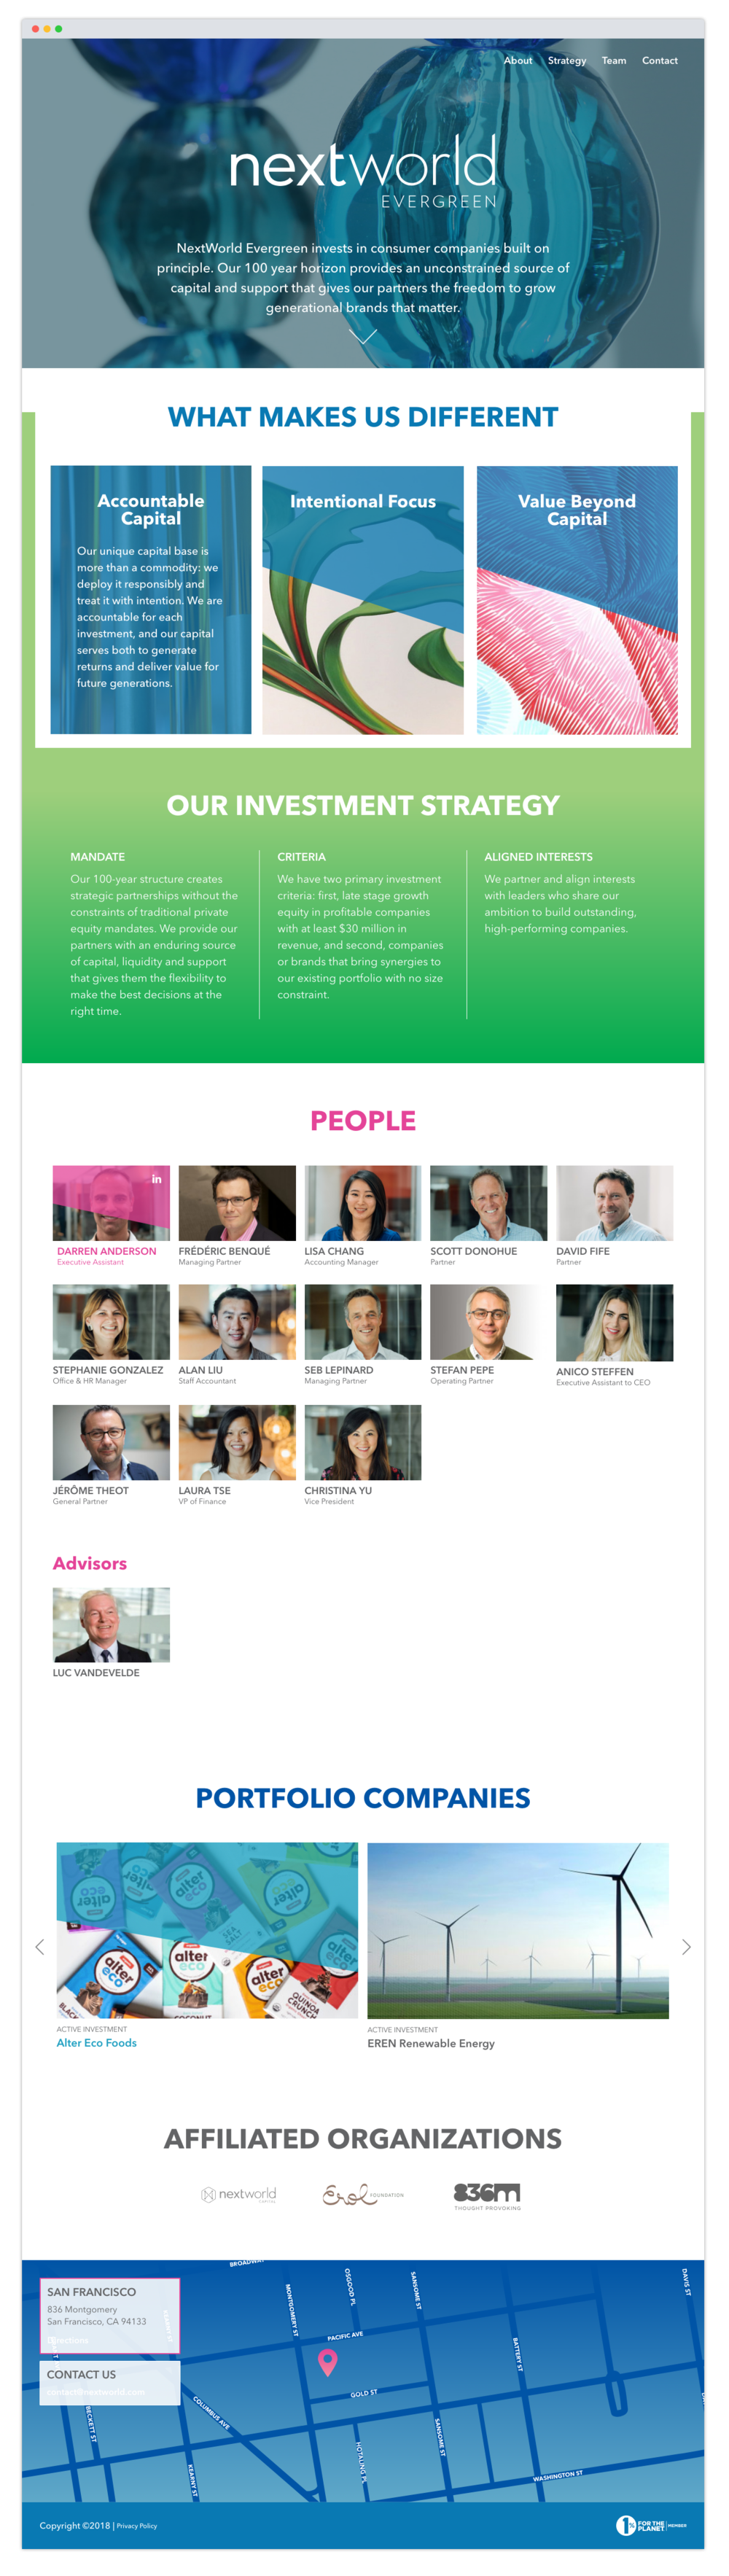 Next World Evergreen - UX, Graphic DesignNext World Evergreen is a venture capitalist firm that focuses on companies that are looking for late stage growth equity who align with their own interests. The site was inspired by artwork displayed throughout their San Francisco office.Site developed by Hunter Rose